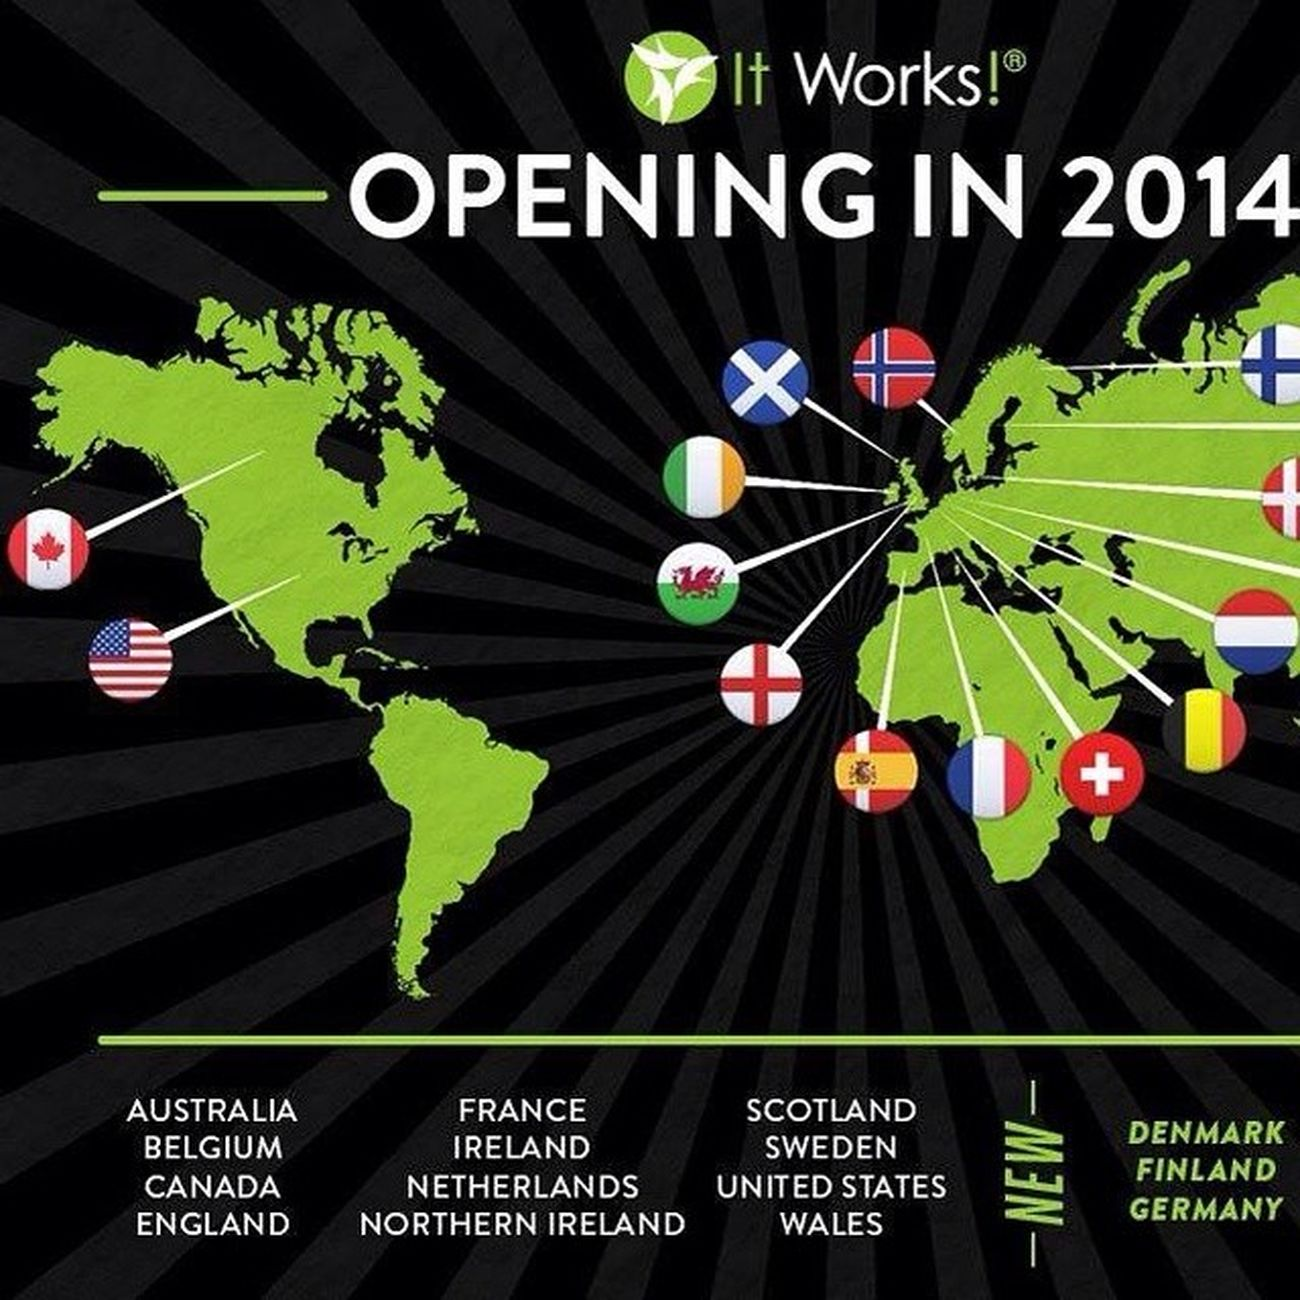 Where ItWorks! Is available! DontBeDiscouraged Itworks Crazywrapthing Crazywrap didntexpectresults wasamazed theworld itworksglobal itworksresults itworksproducts lc loyalcustomer loyaltycustomer